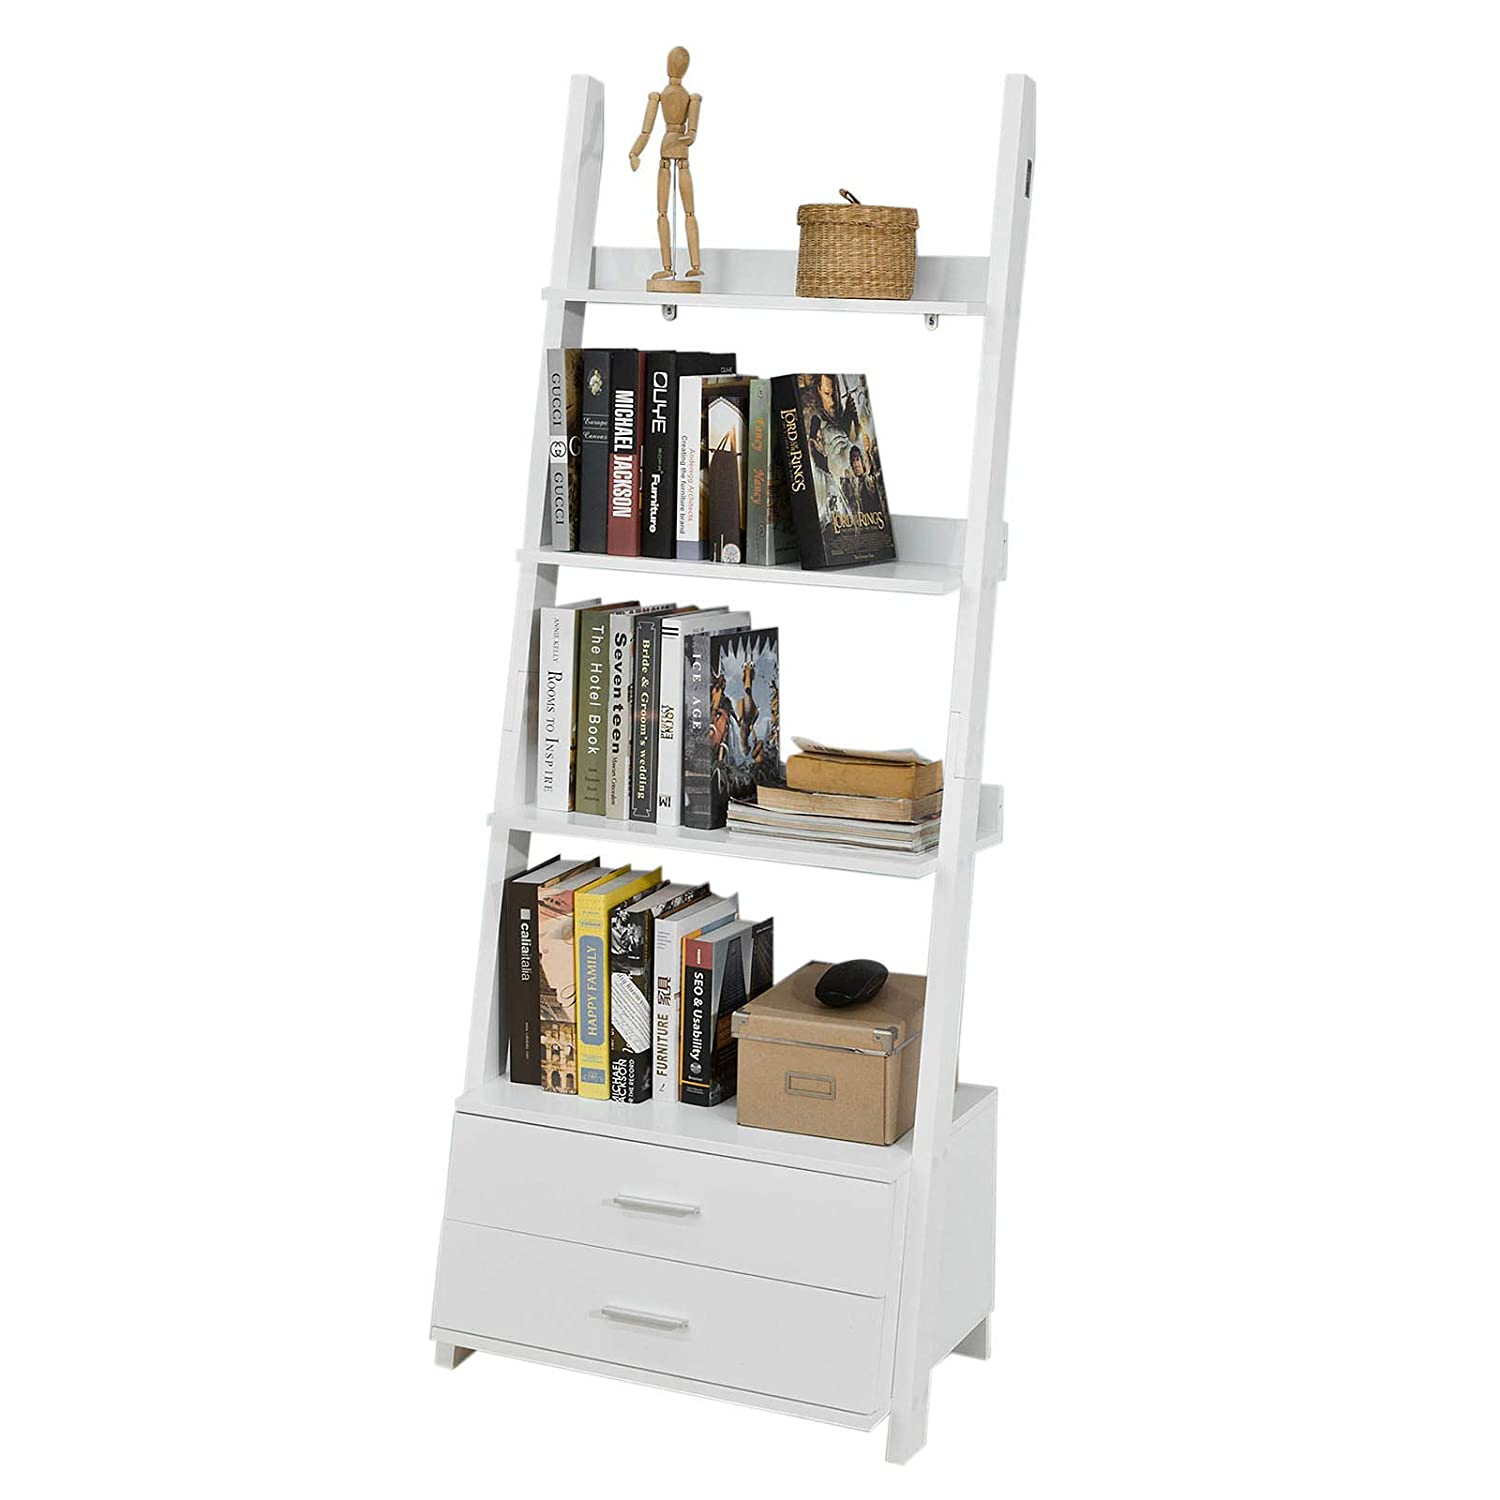 SoBuy FRG230-W, Ladder Shelf Wall Shelf Bookcase Storage Display Shelving Unit with 3 Shelves and 2 Drawers, White